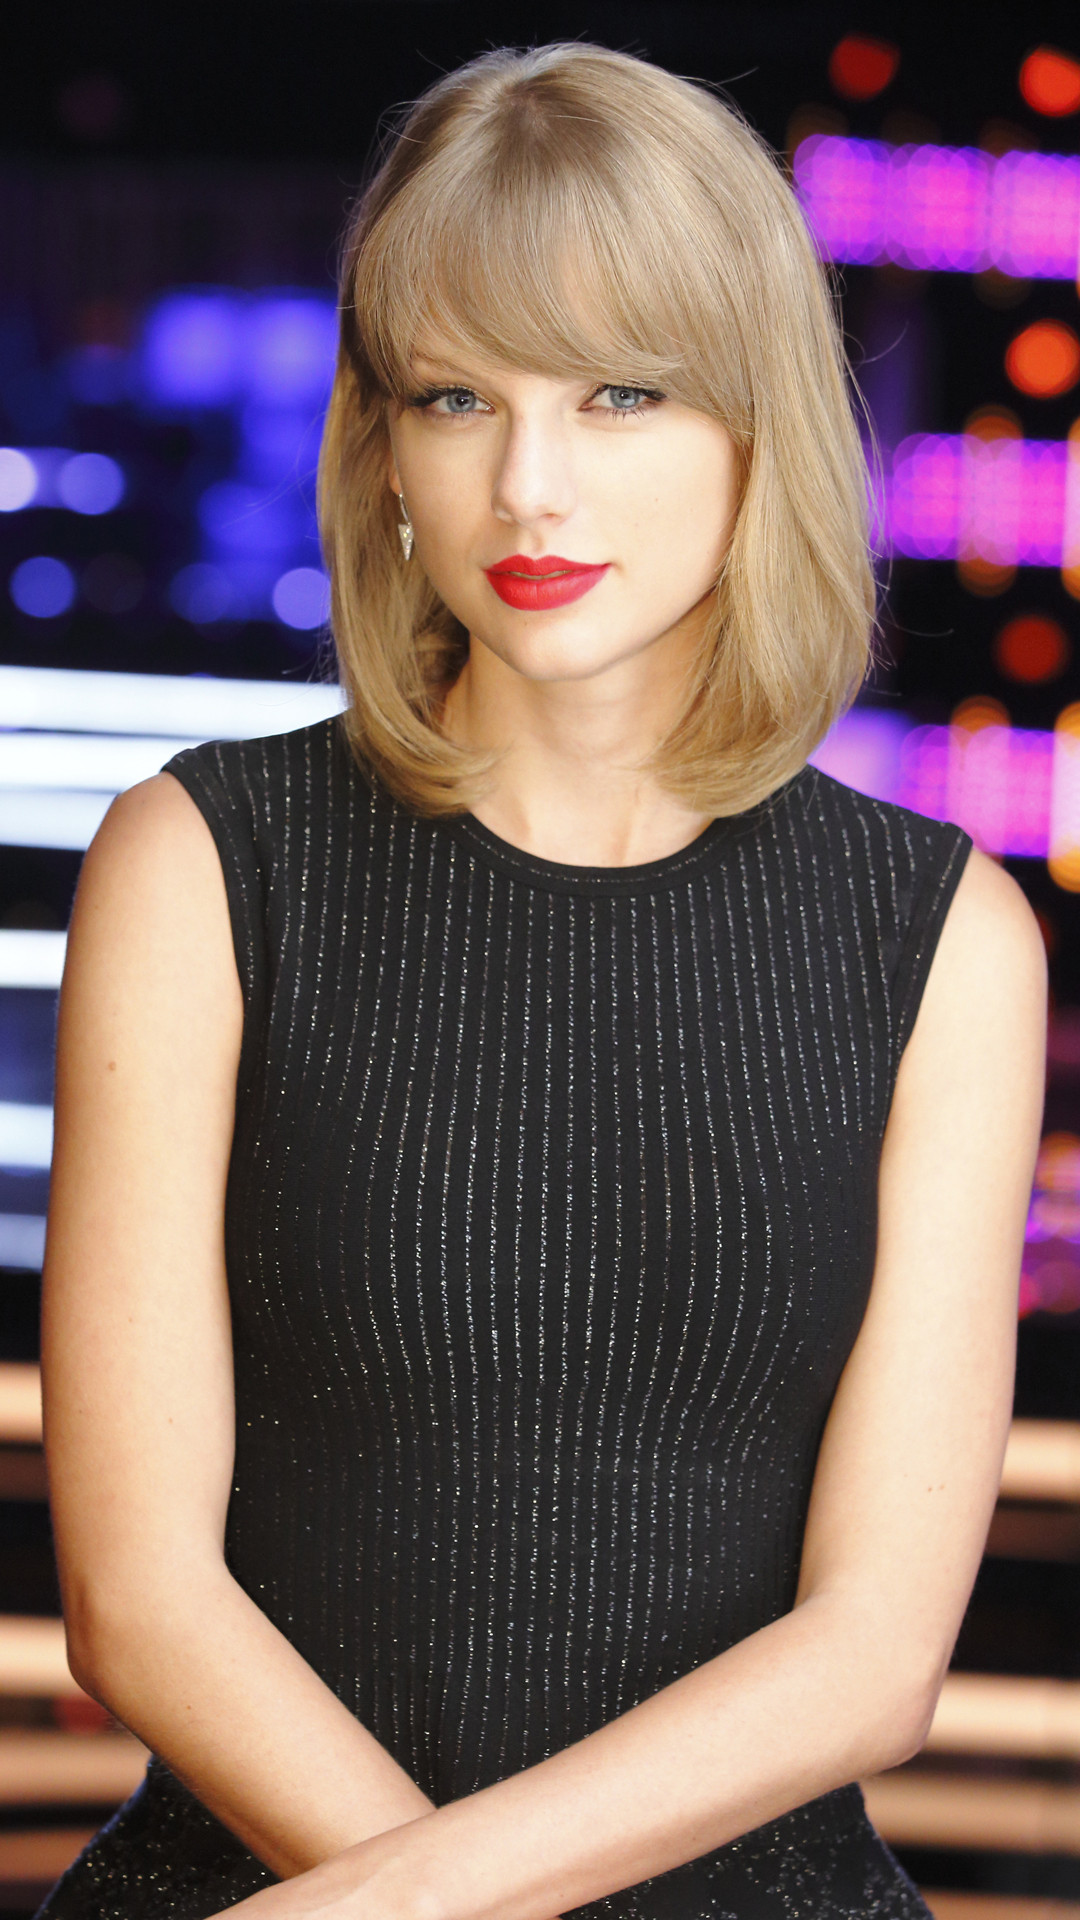 Taylor Swift's Home Intruder Faces 6-Month Jail Sentence ... Taylor Swift